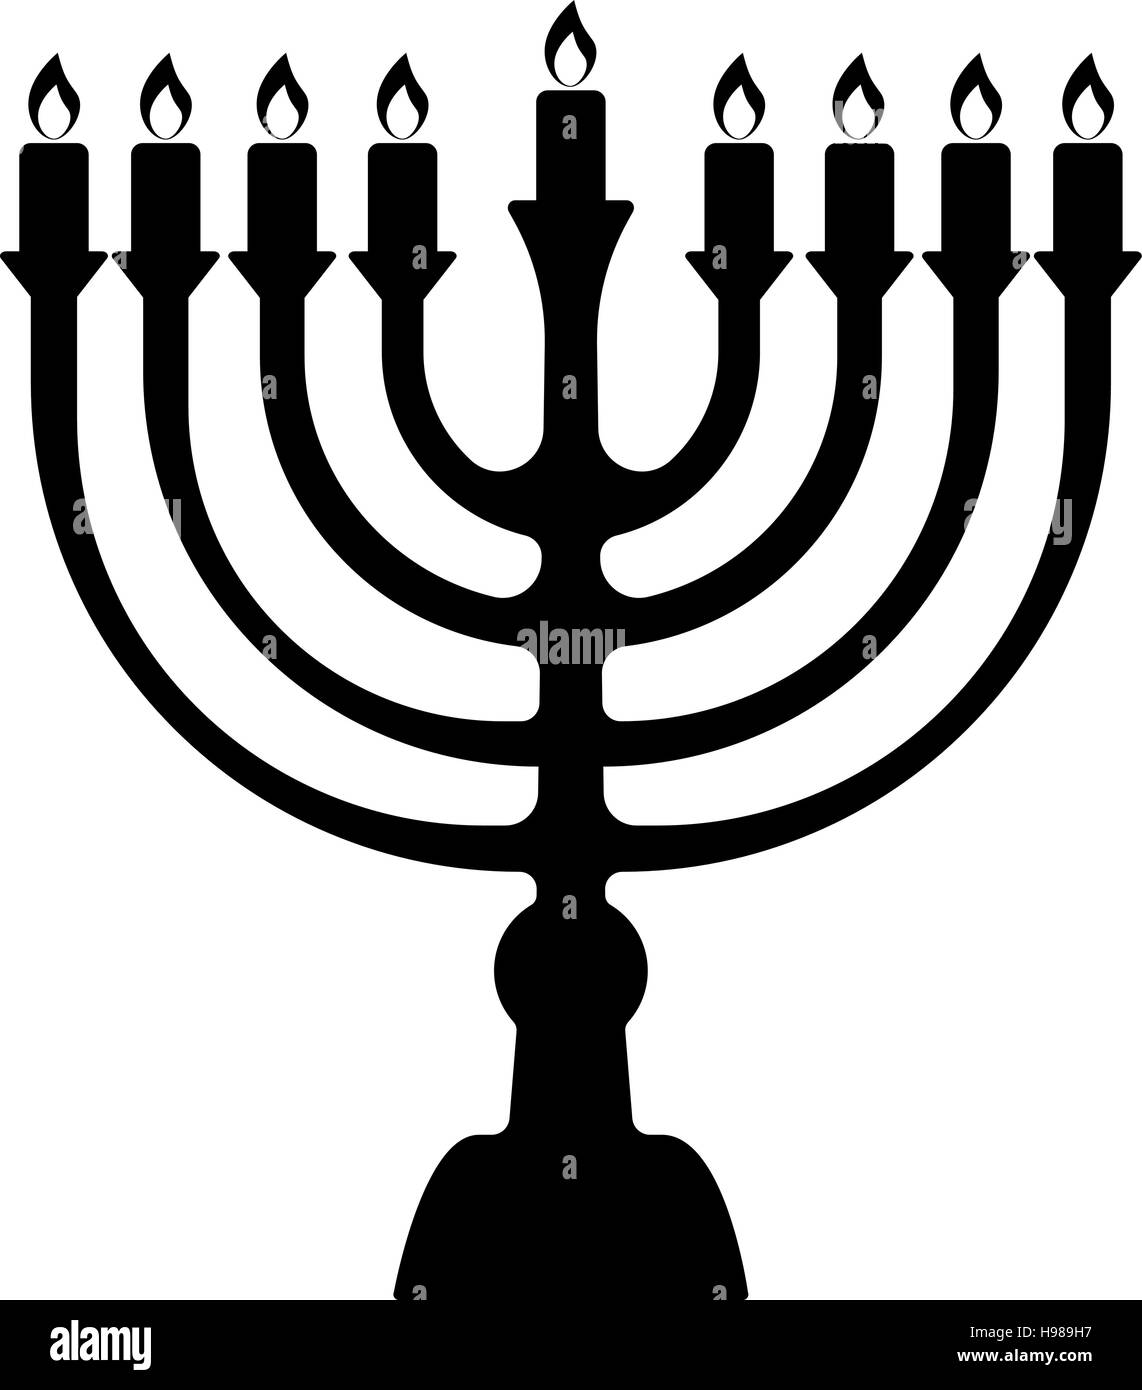 Menorah for Hanukkah, Vector illustration. Religion icon. Silhouette Flat style - Stock Vector